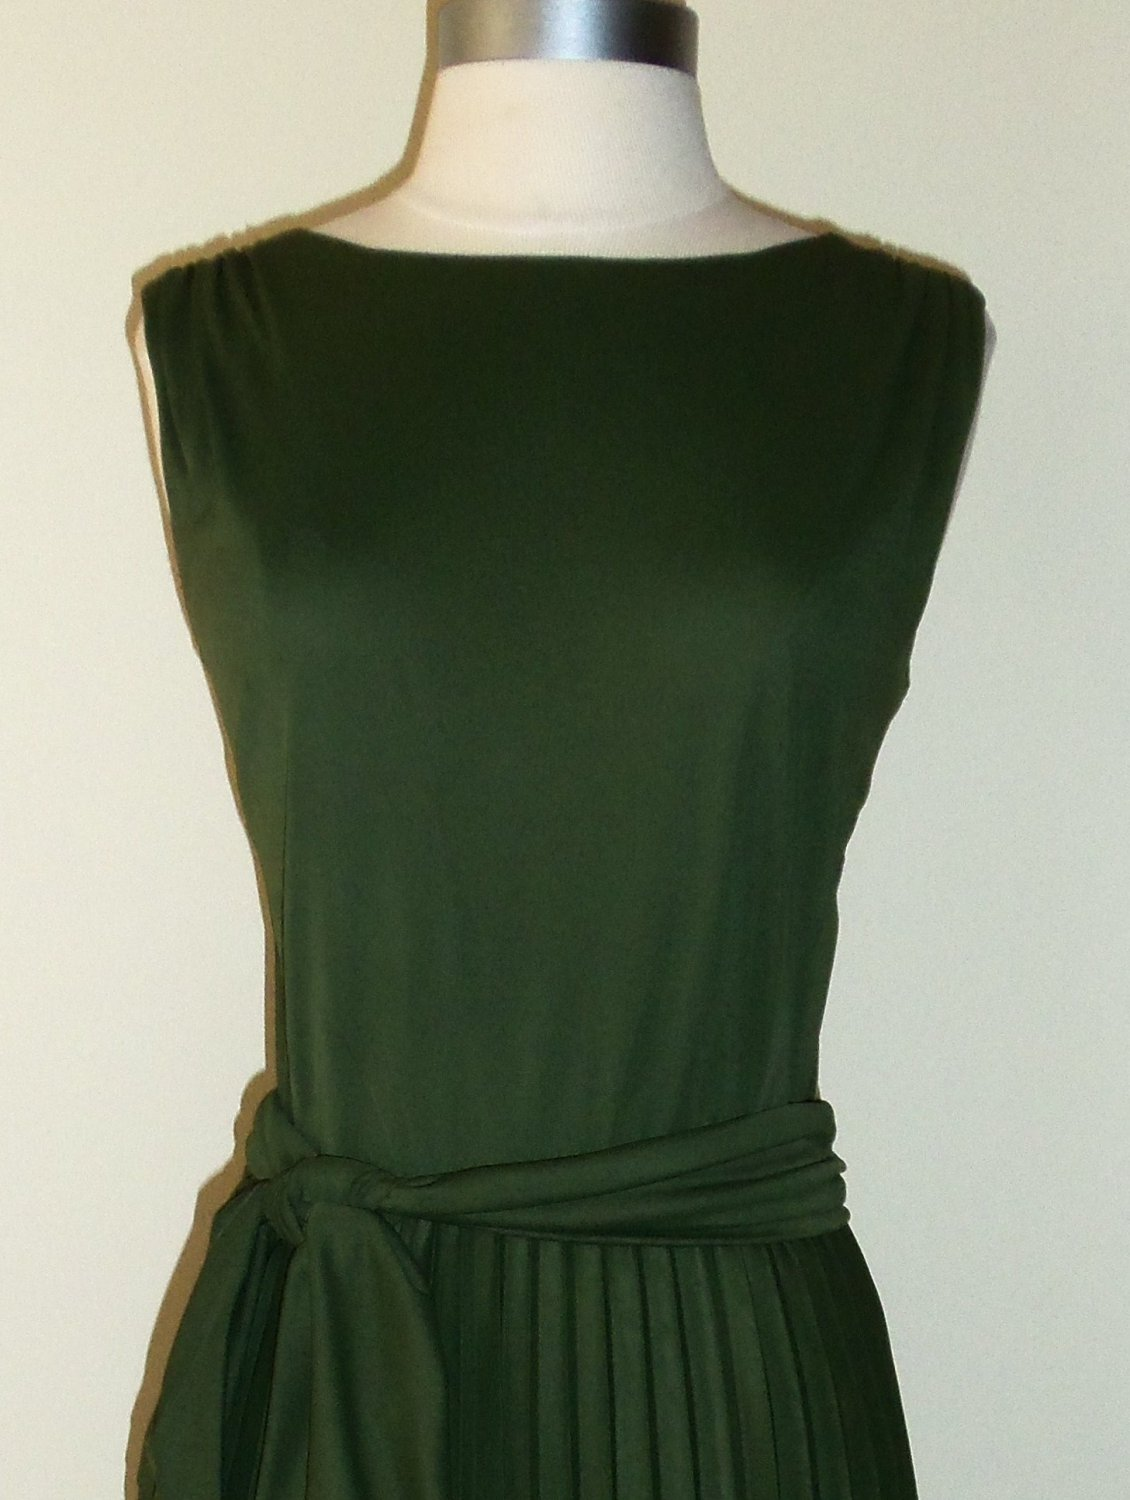 Vintage Olive Green Pleated Dress Size S ~ SOLD